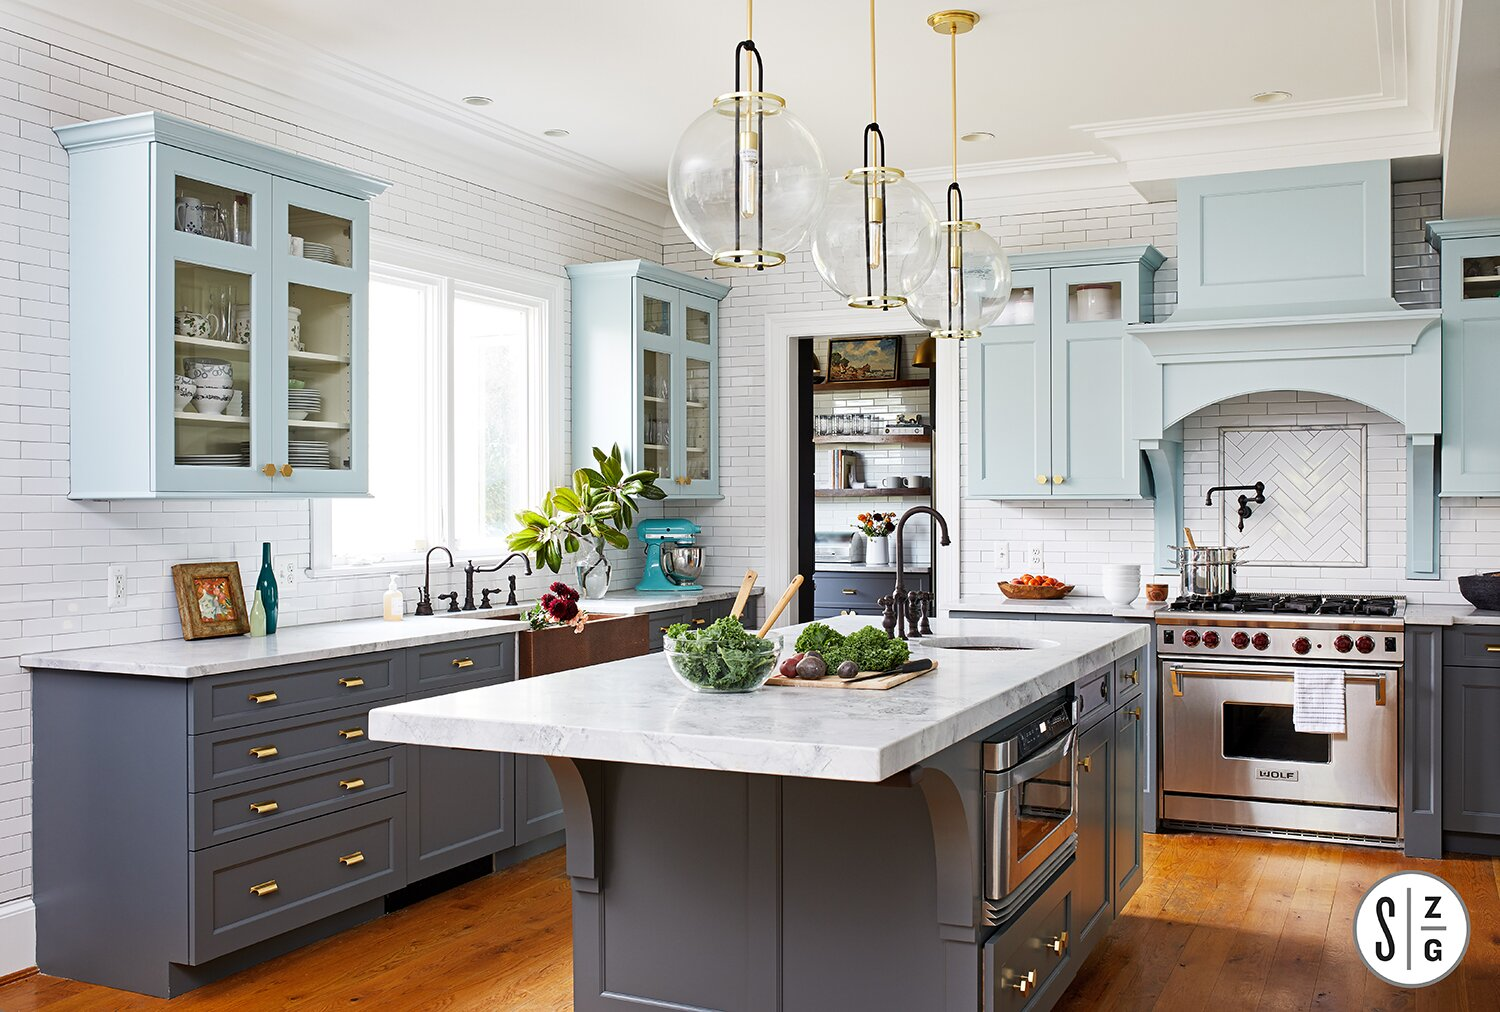 This Gorgeous Kitchen Renovation Was Designed to Be Family ...